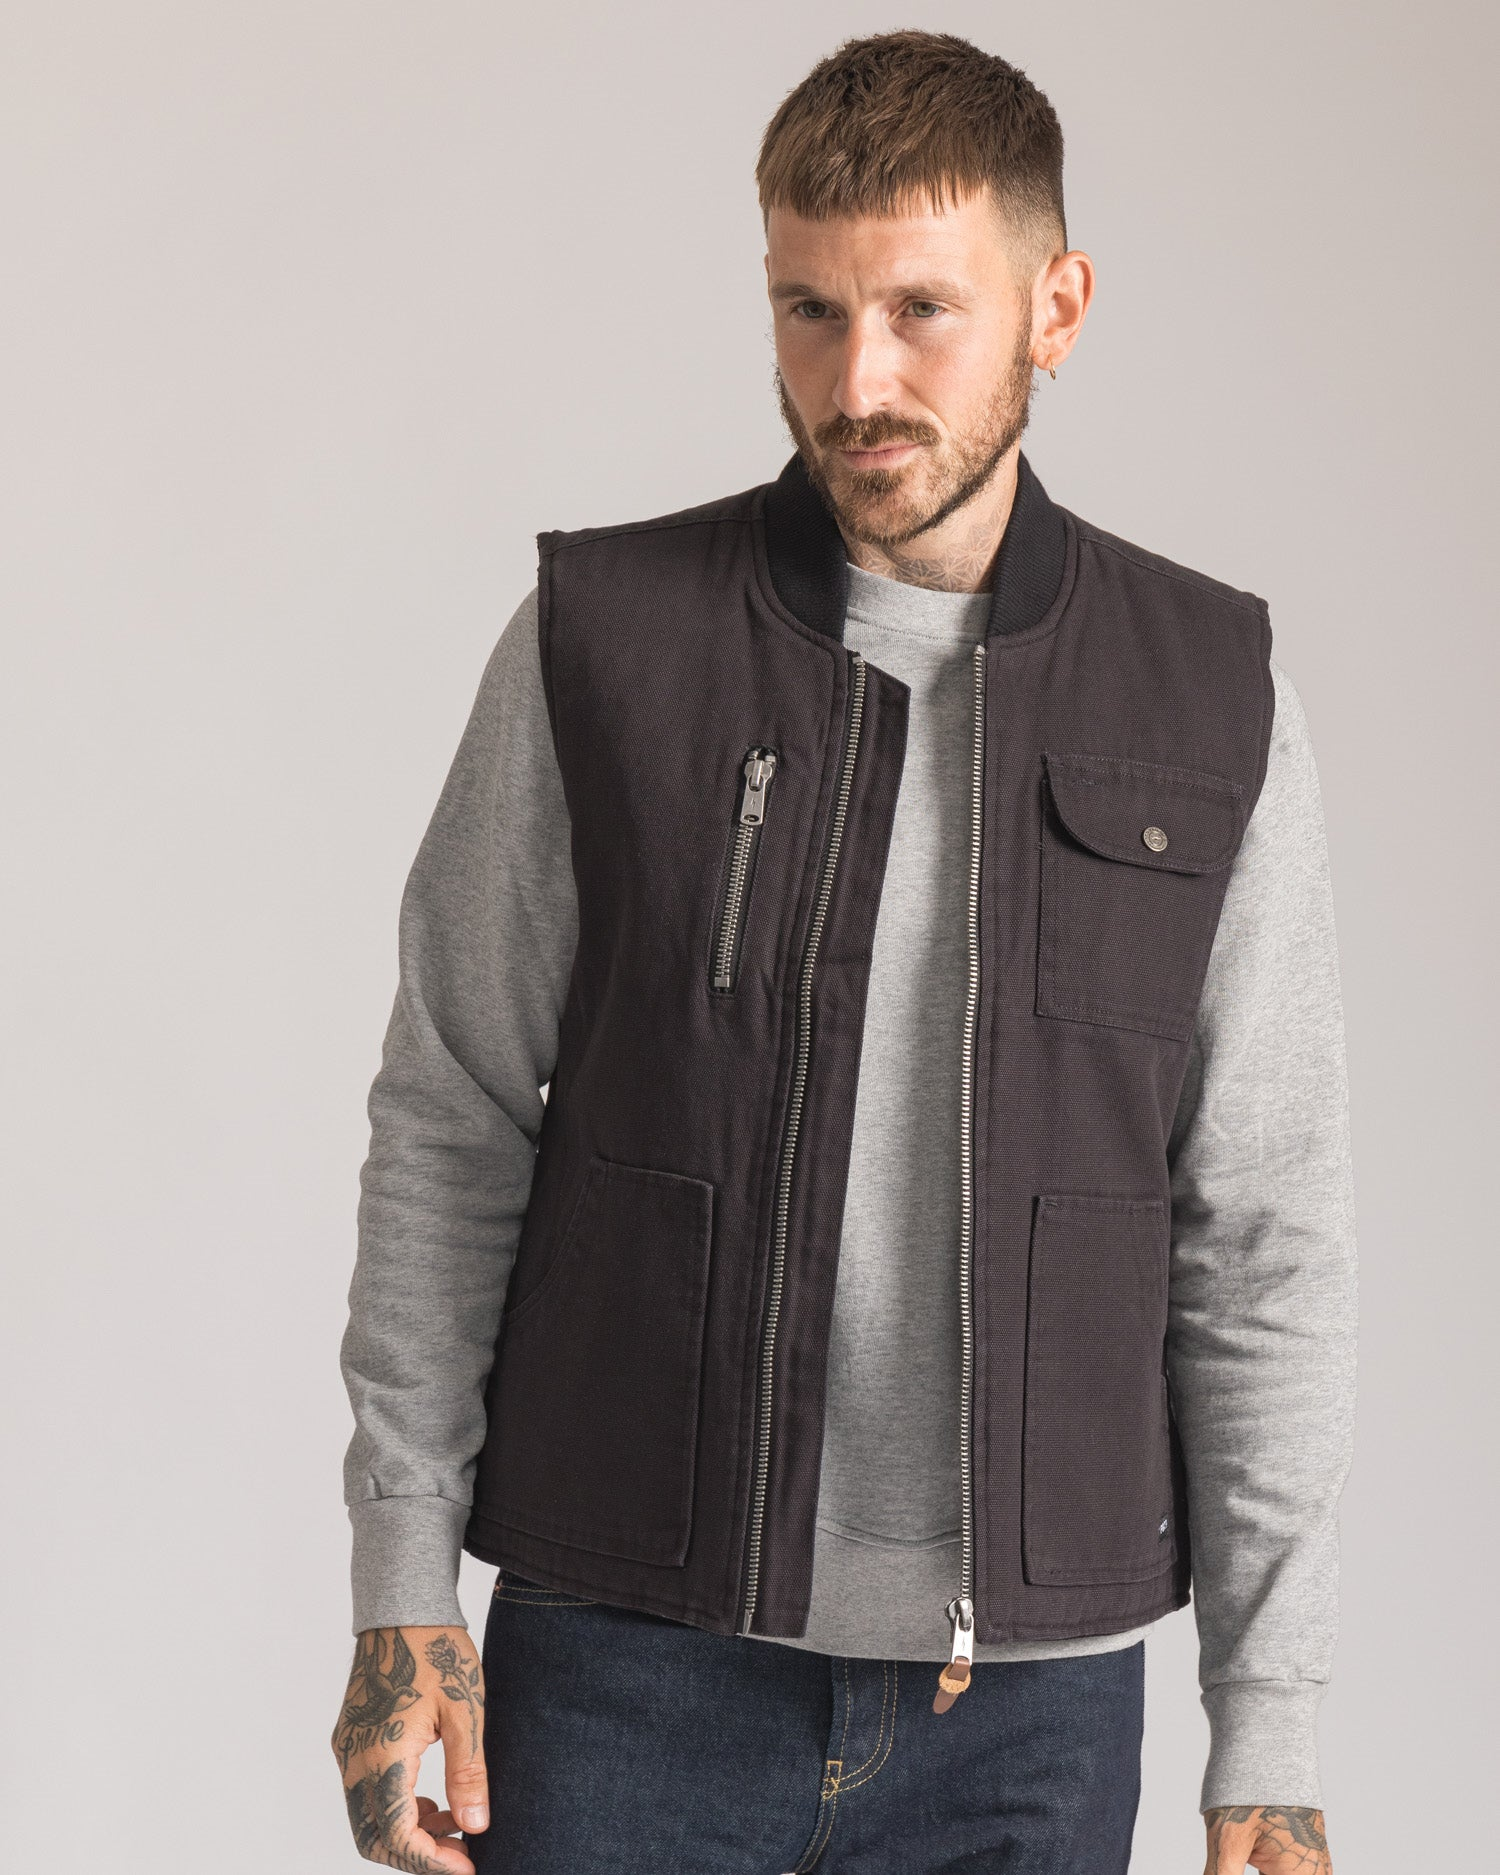 Mens Outerwear Black Cotton Gilet